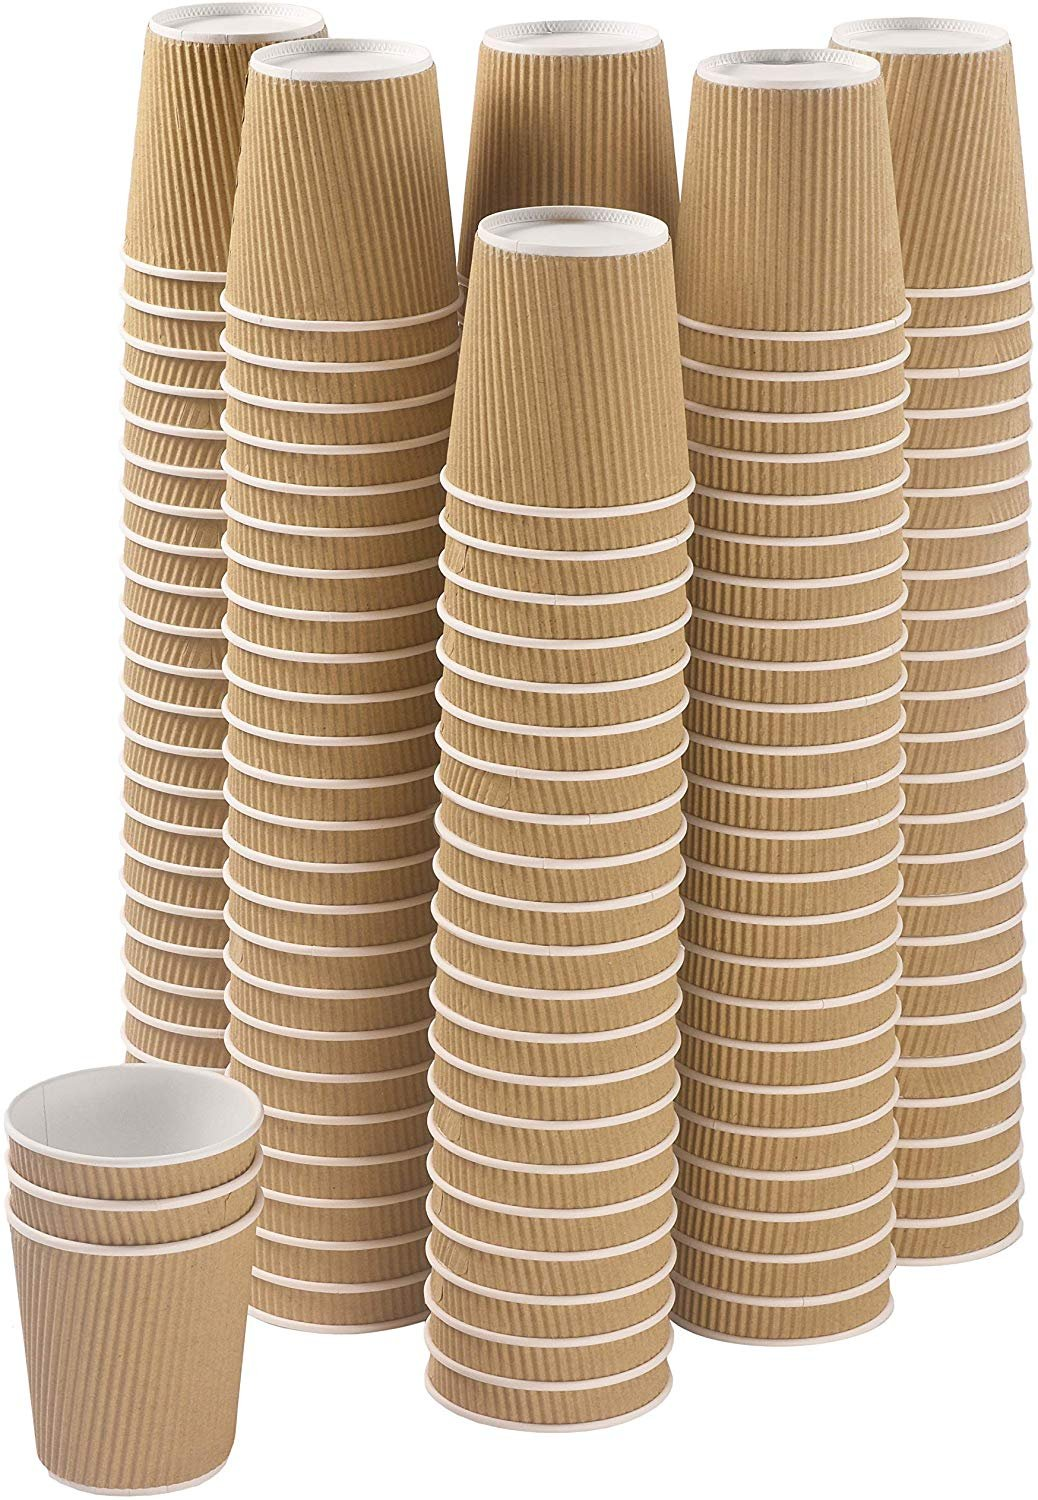 Set of 150 Ripple Insulated Kraft 10-oz Paper Cups ... Coffee//Tea Hot Cups